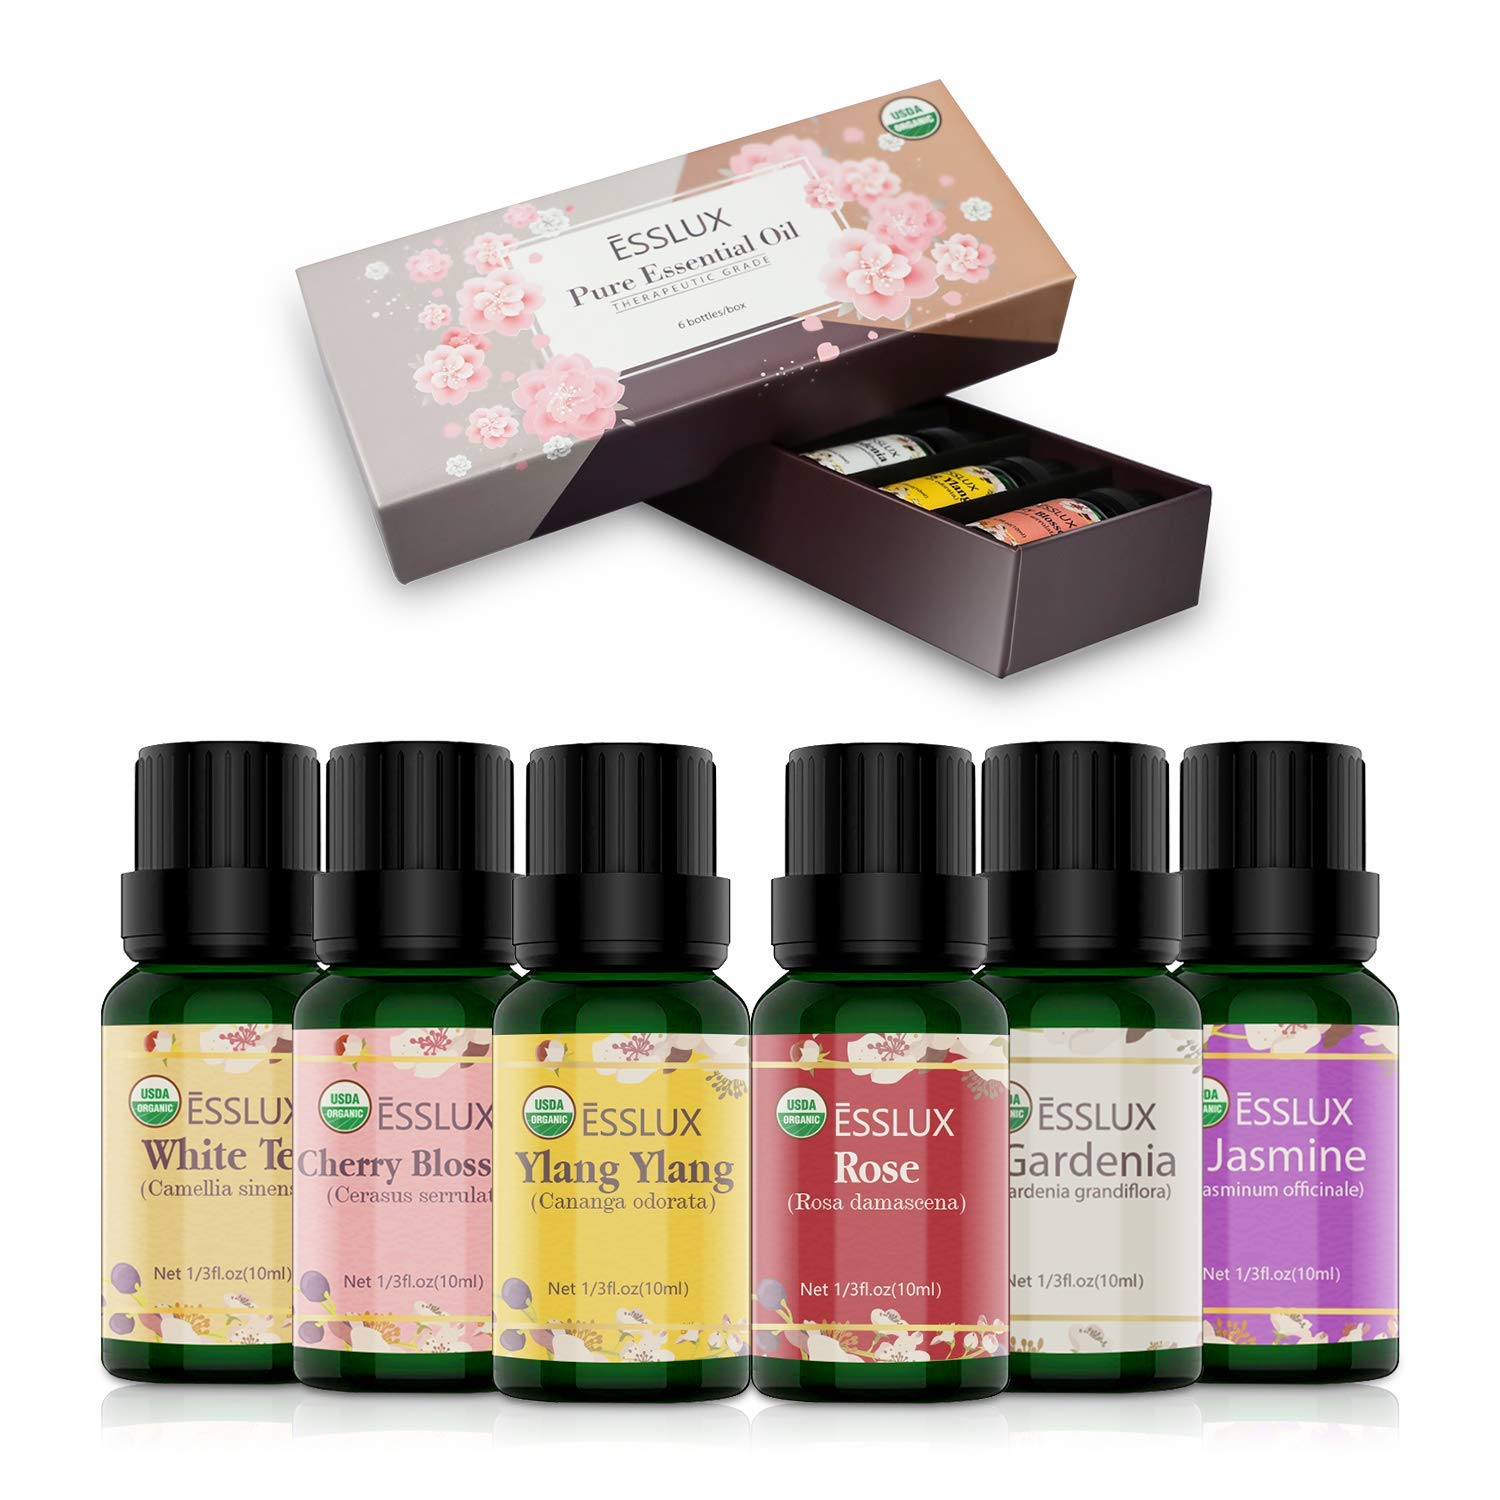 ESSLUX Floral Essential Oils Set, 100% Pure Aromatherapy Oil Gift Set for Diffuser & Massage, Rose, Ylang Ylang, Jasmine, Gardenia, Cherry Blossom, White Tea Oil, 6x10ml (Multicolor)